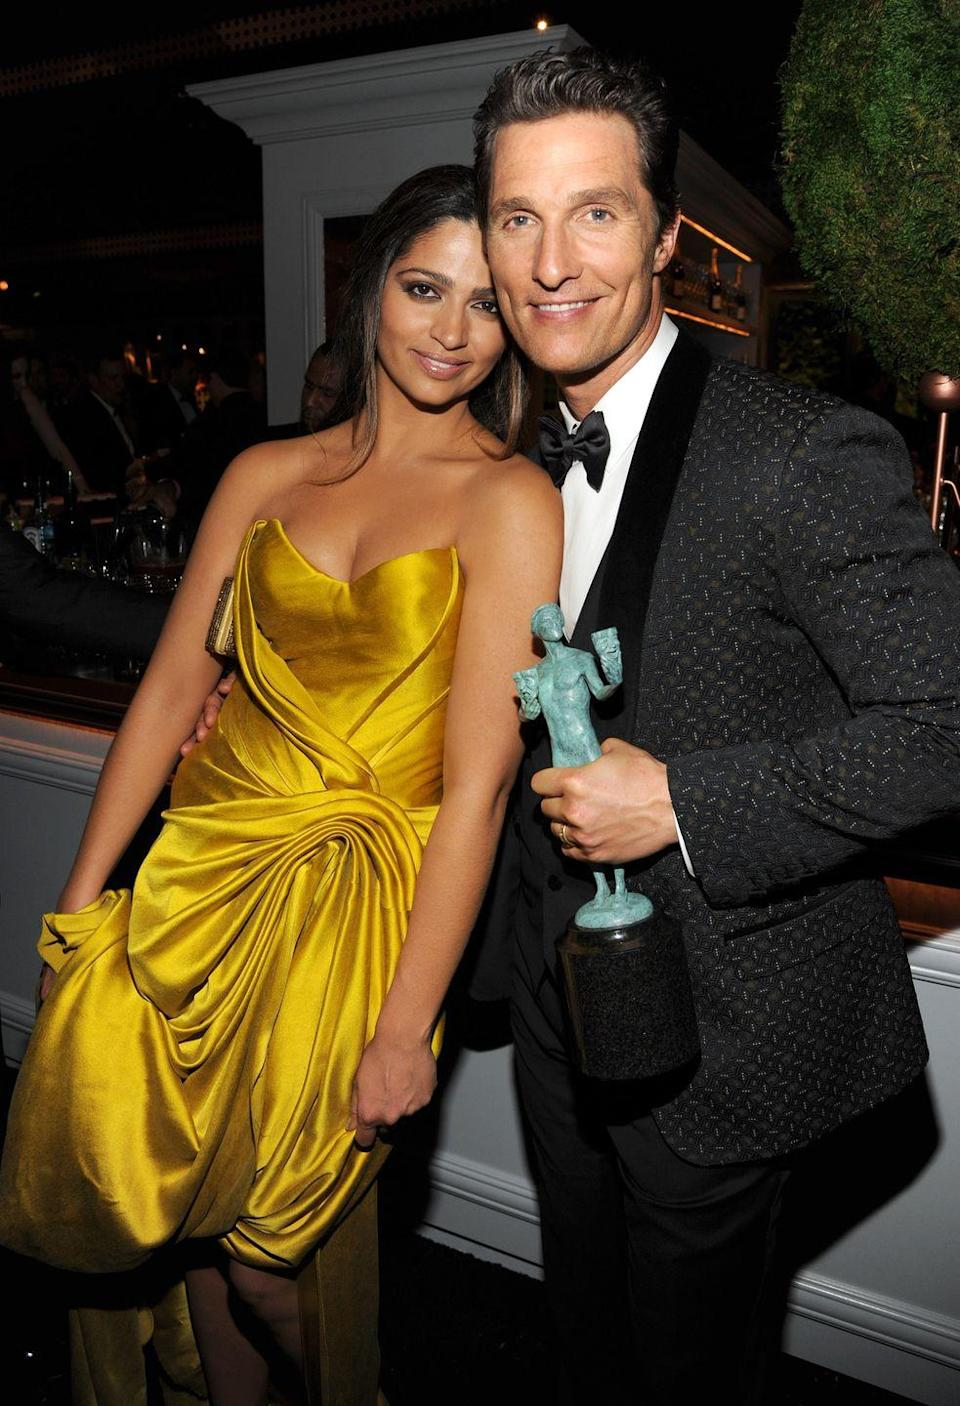 <p><strong>Age gap: </strong>13 years</p><p>While Matthew and Camila tend to keep their relationship and family out of the limelight, it seems like everything is <em>alright, alright, alright </em>with their age difference. The couple met in 2006 and got married in 2012, and now they have three children together.</p>